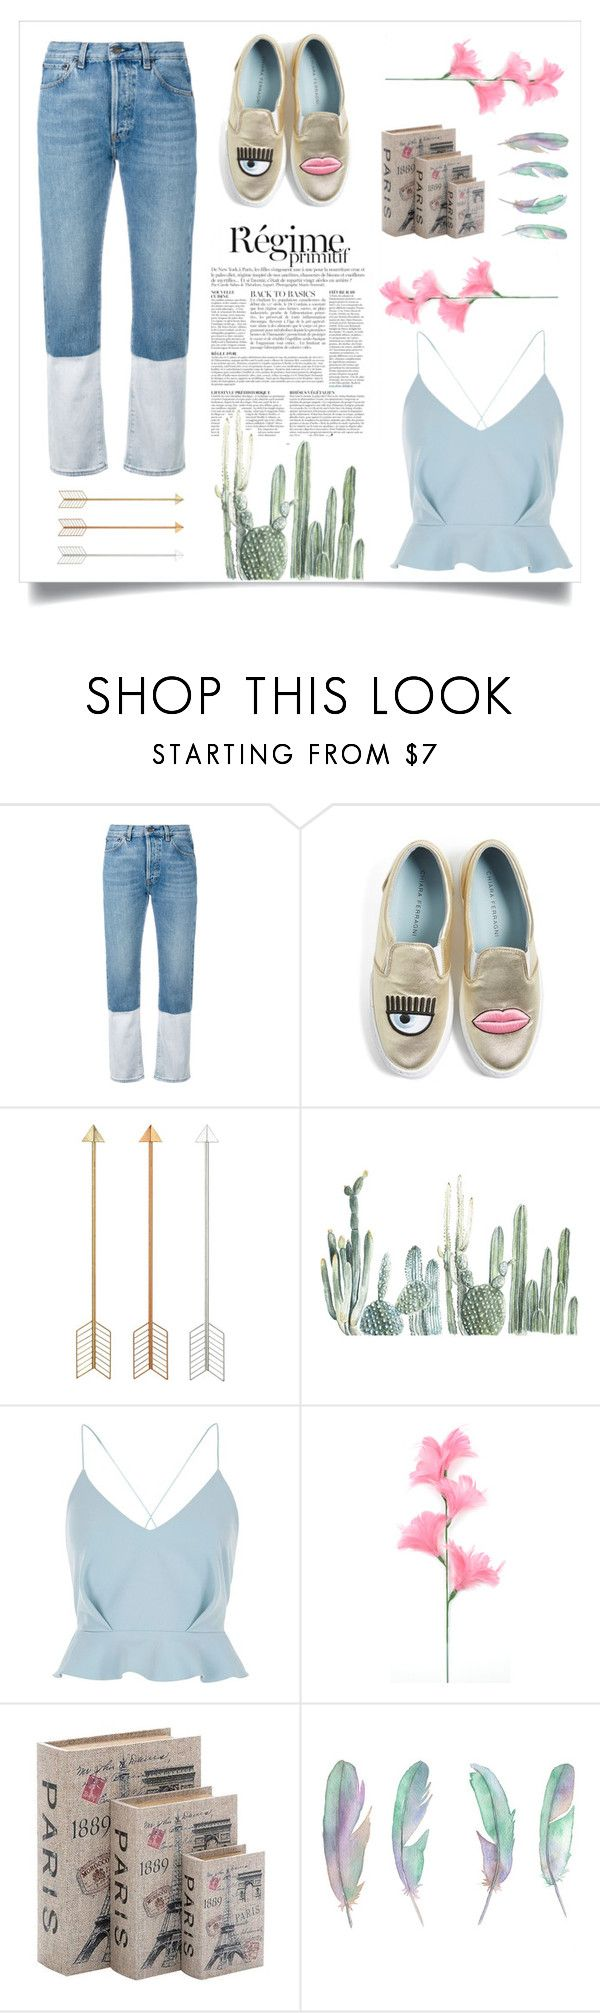 """Casual Date Night"" by emilyruthwalster ❤ liked on Polyvore featuring Ports 1961, Chiara Ferragni, Anja, River Island and Home Decorators Collection"